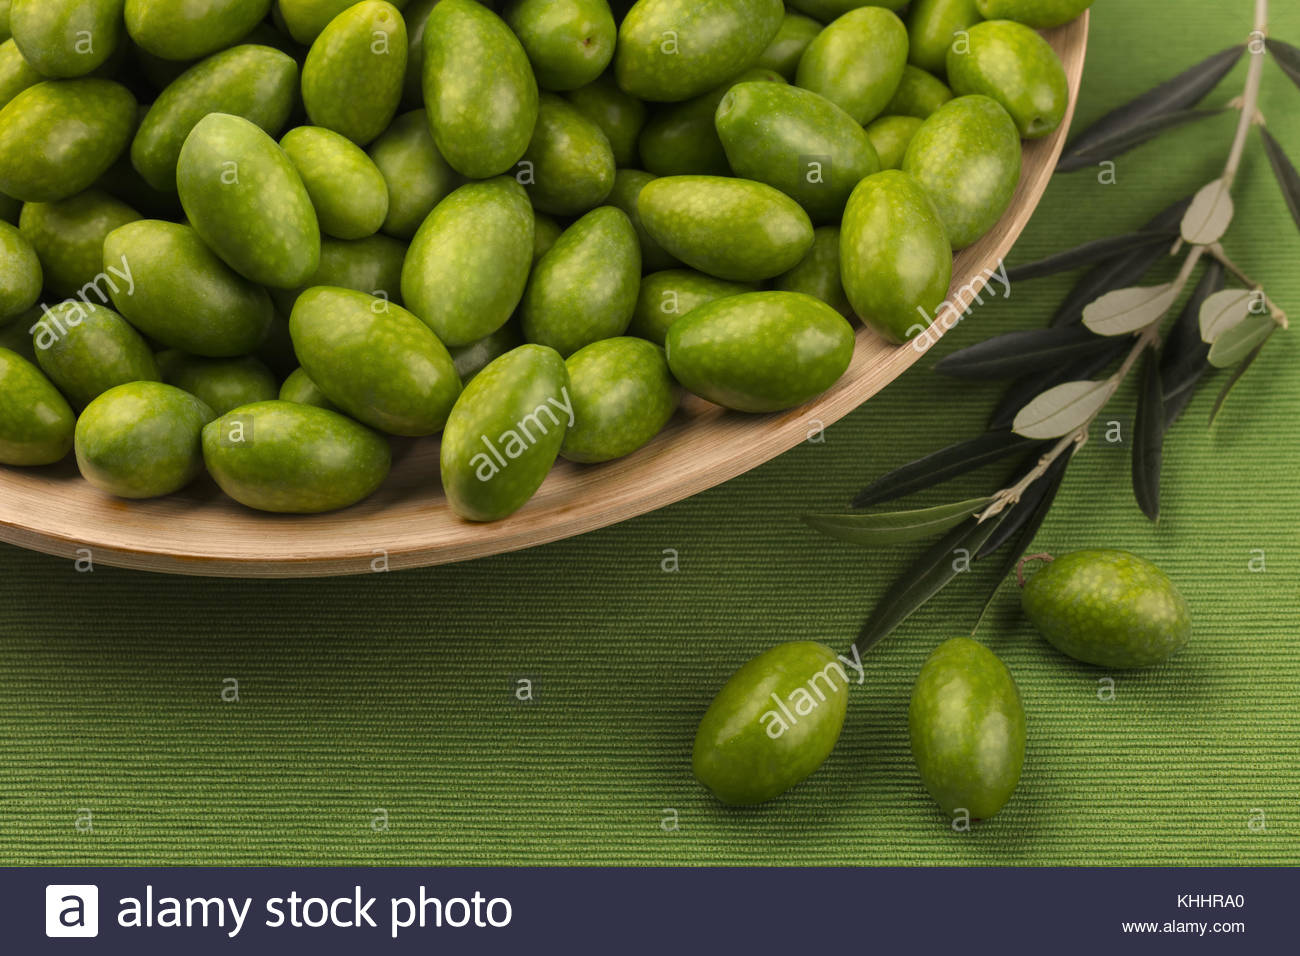 Unprocessed, green, Italian olives harvested in autumn. Olives are a staple of the Mediterranean diet. - Stock Image